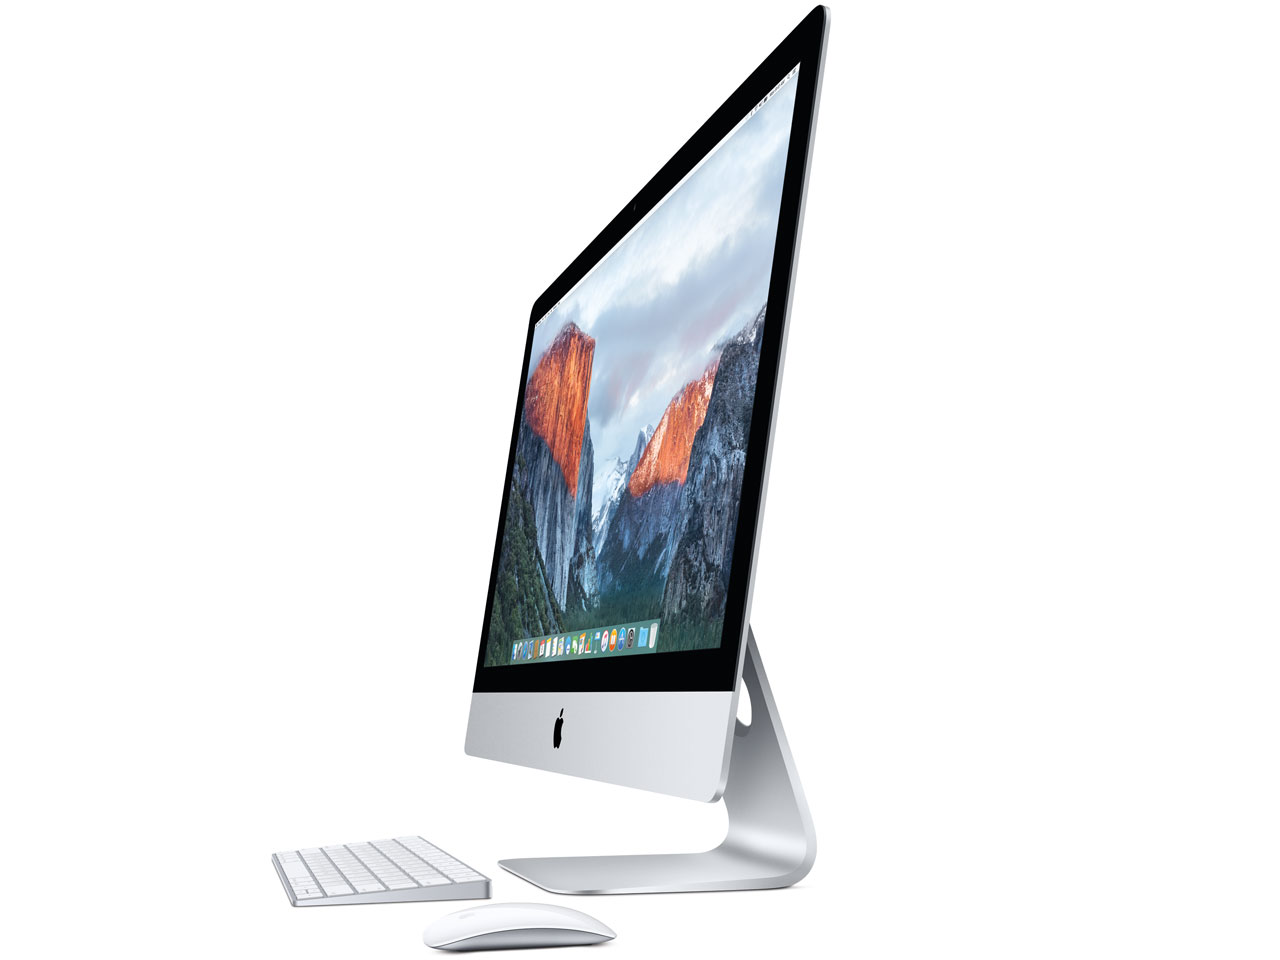 iMac Retina 5K intel Core i5 3.2GHz(4コア) 27インチ Silver (2015/10) MK462J/A